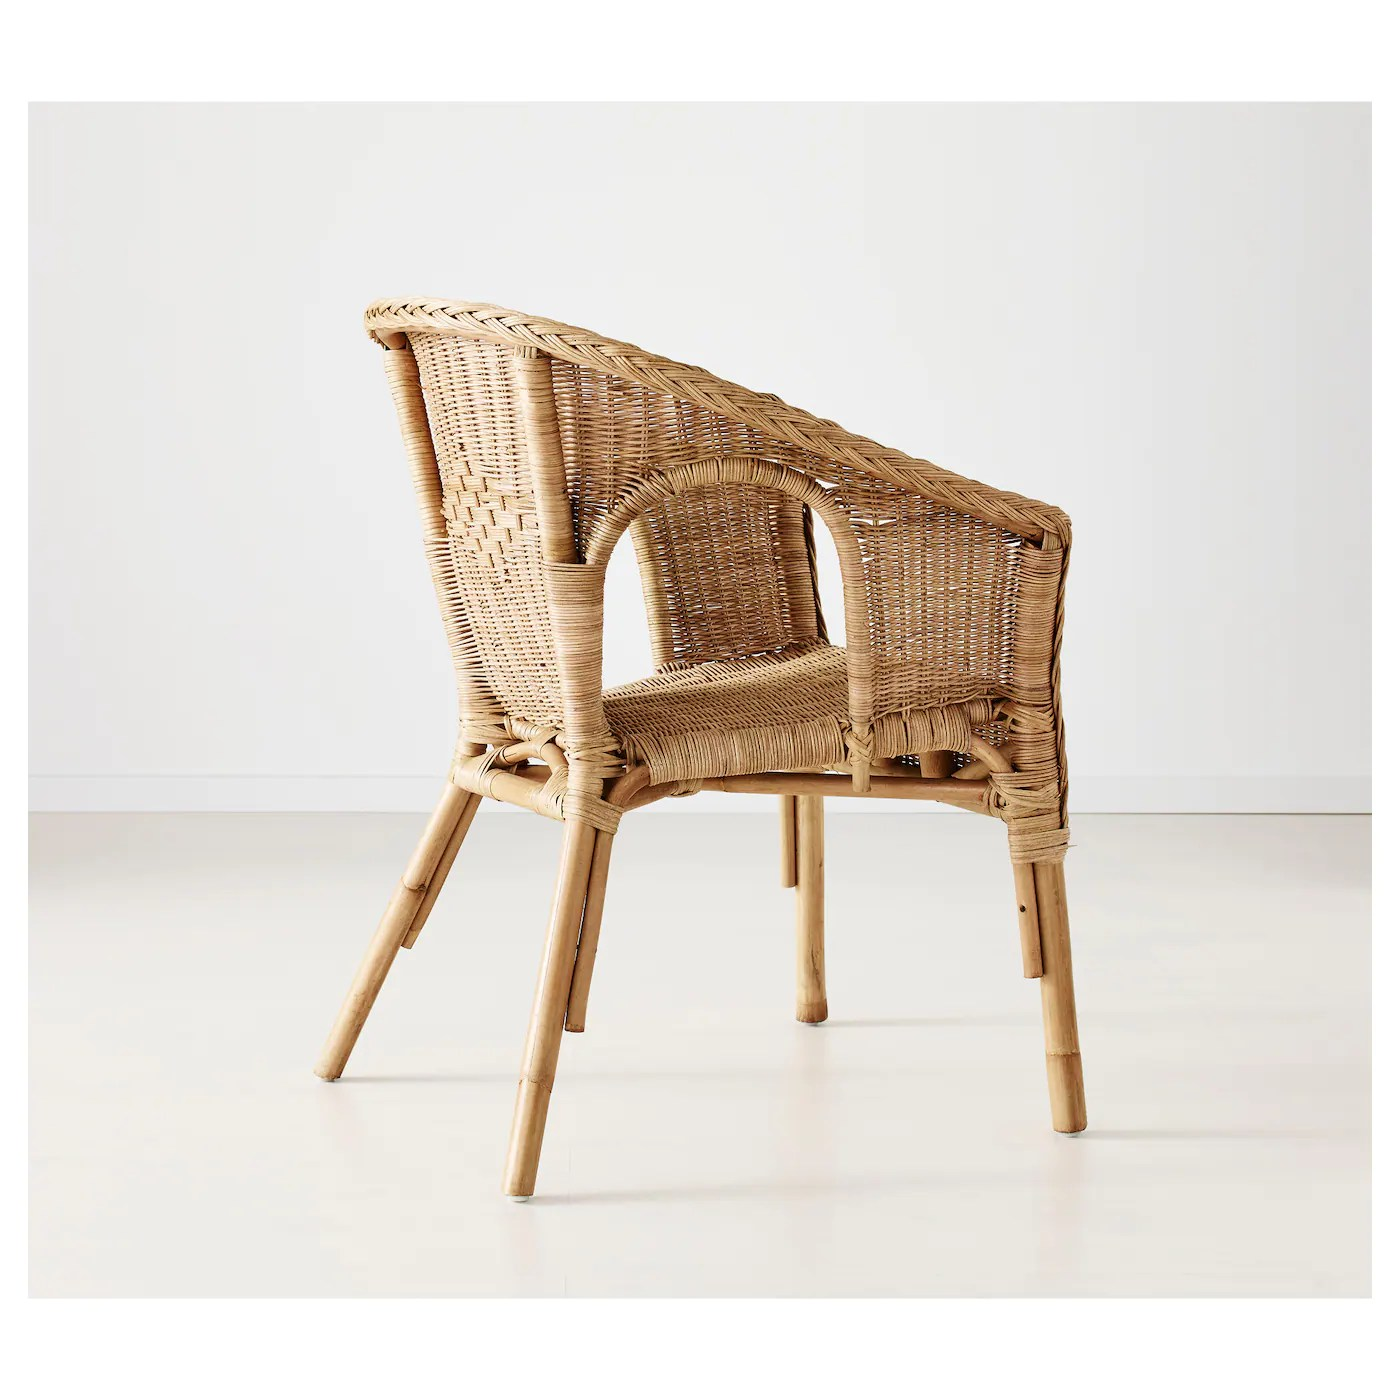 Ikea Rattan Chair Agen Chair Rattan Bamboo Ikea